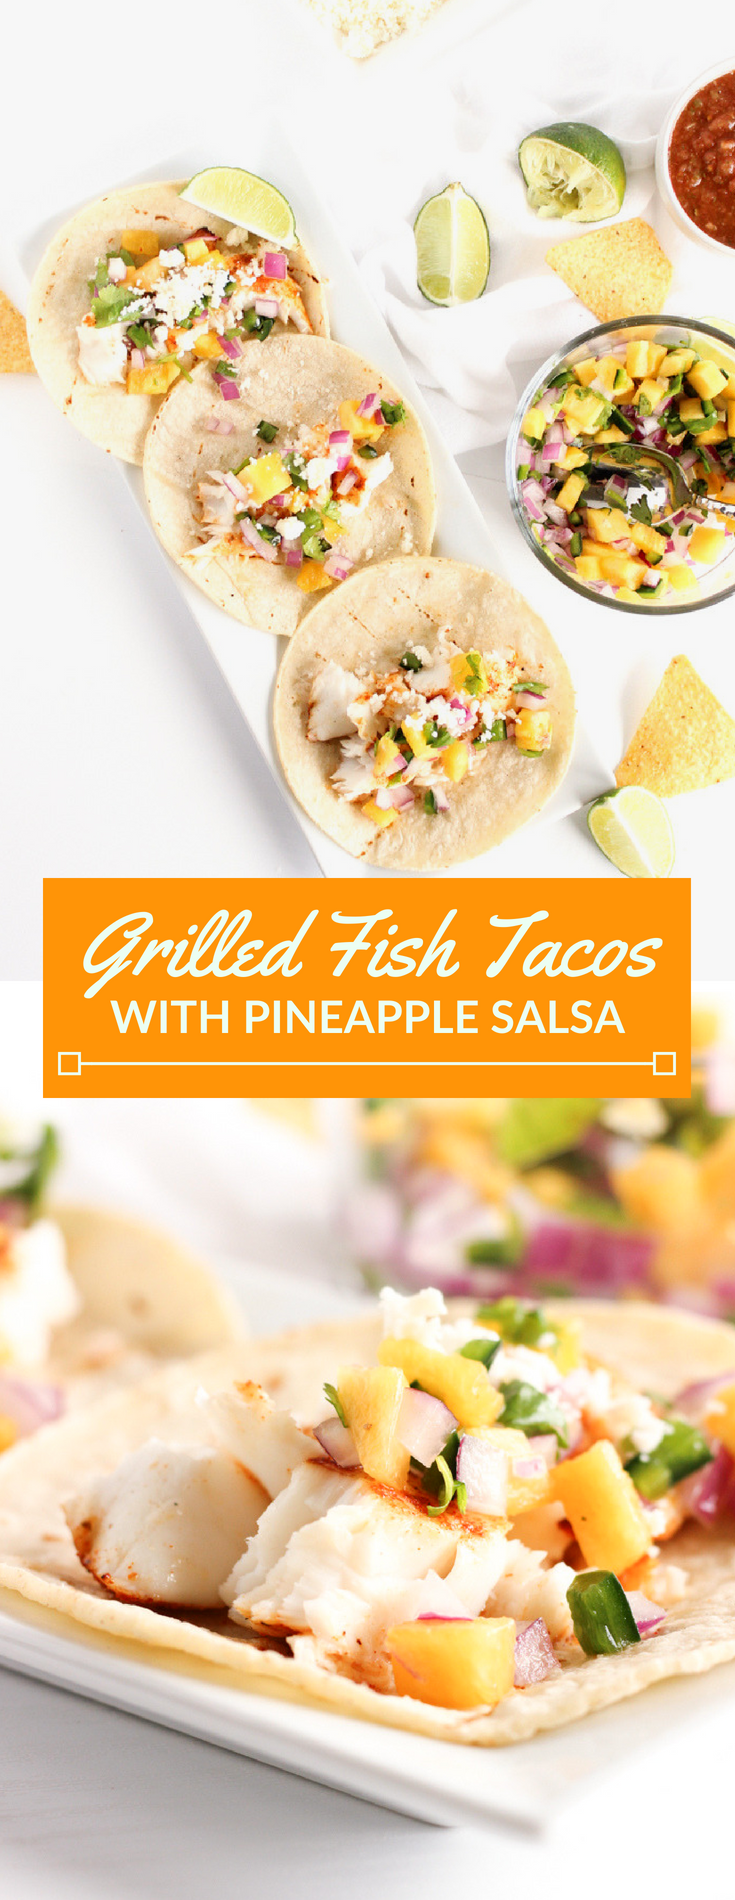 Sweet and spicy pineapple salsa is the perfect companion for these grilled fish tacos!